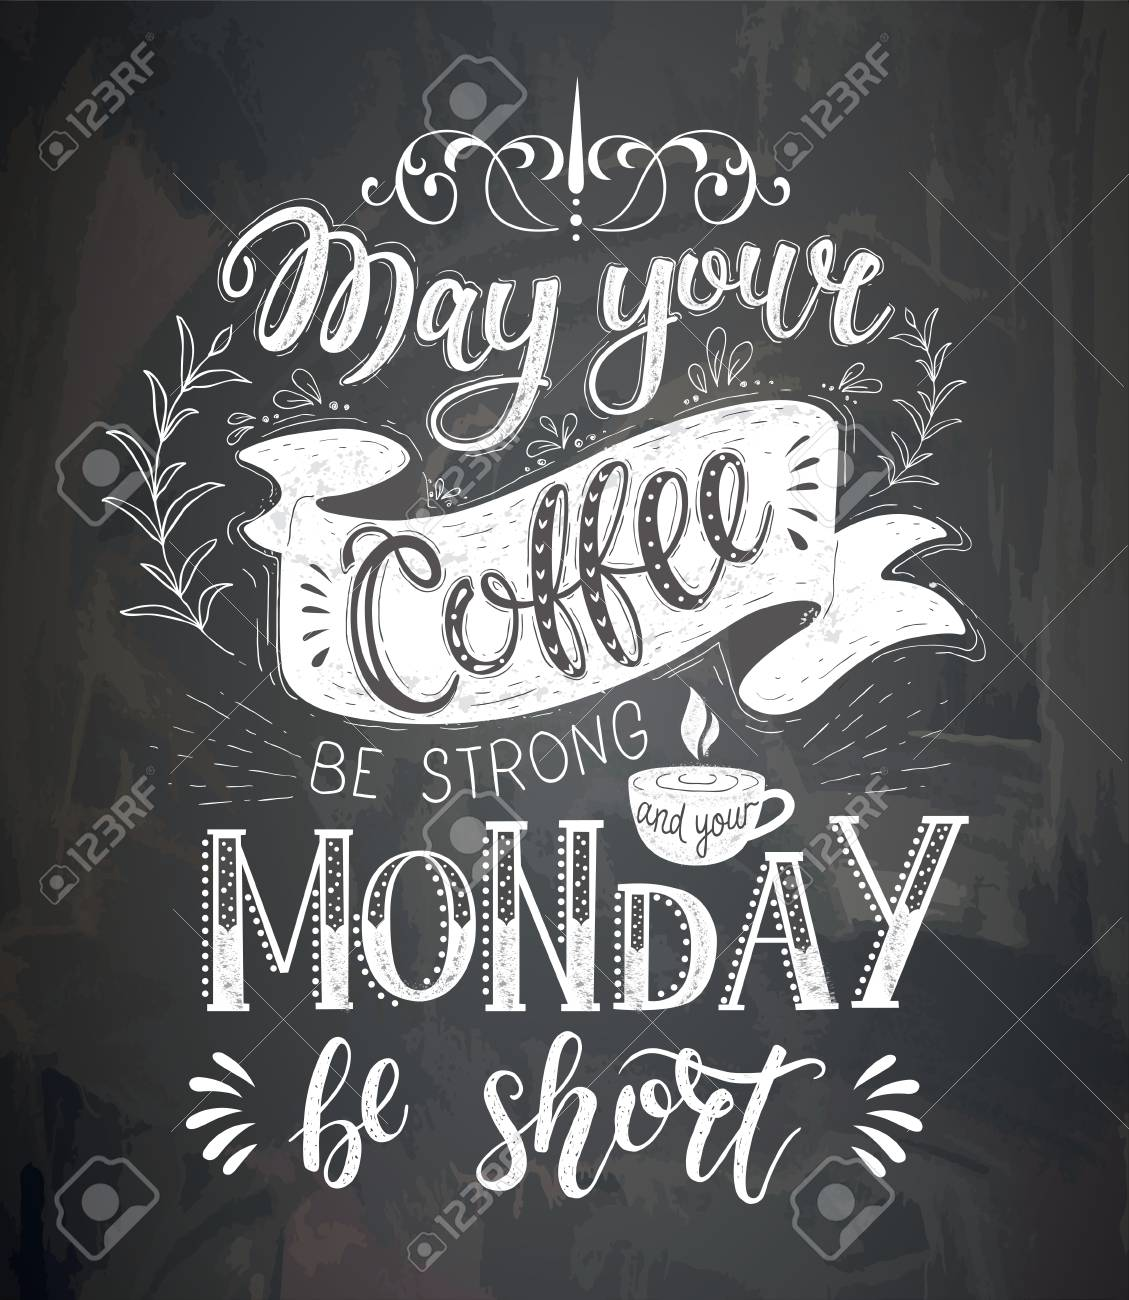 Coffee Quotes On The Chalk Board Vector Hand Drawn Lettering Royalty Free Cliparts Vectors And Stock Illustration Image 107159403